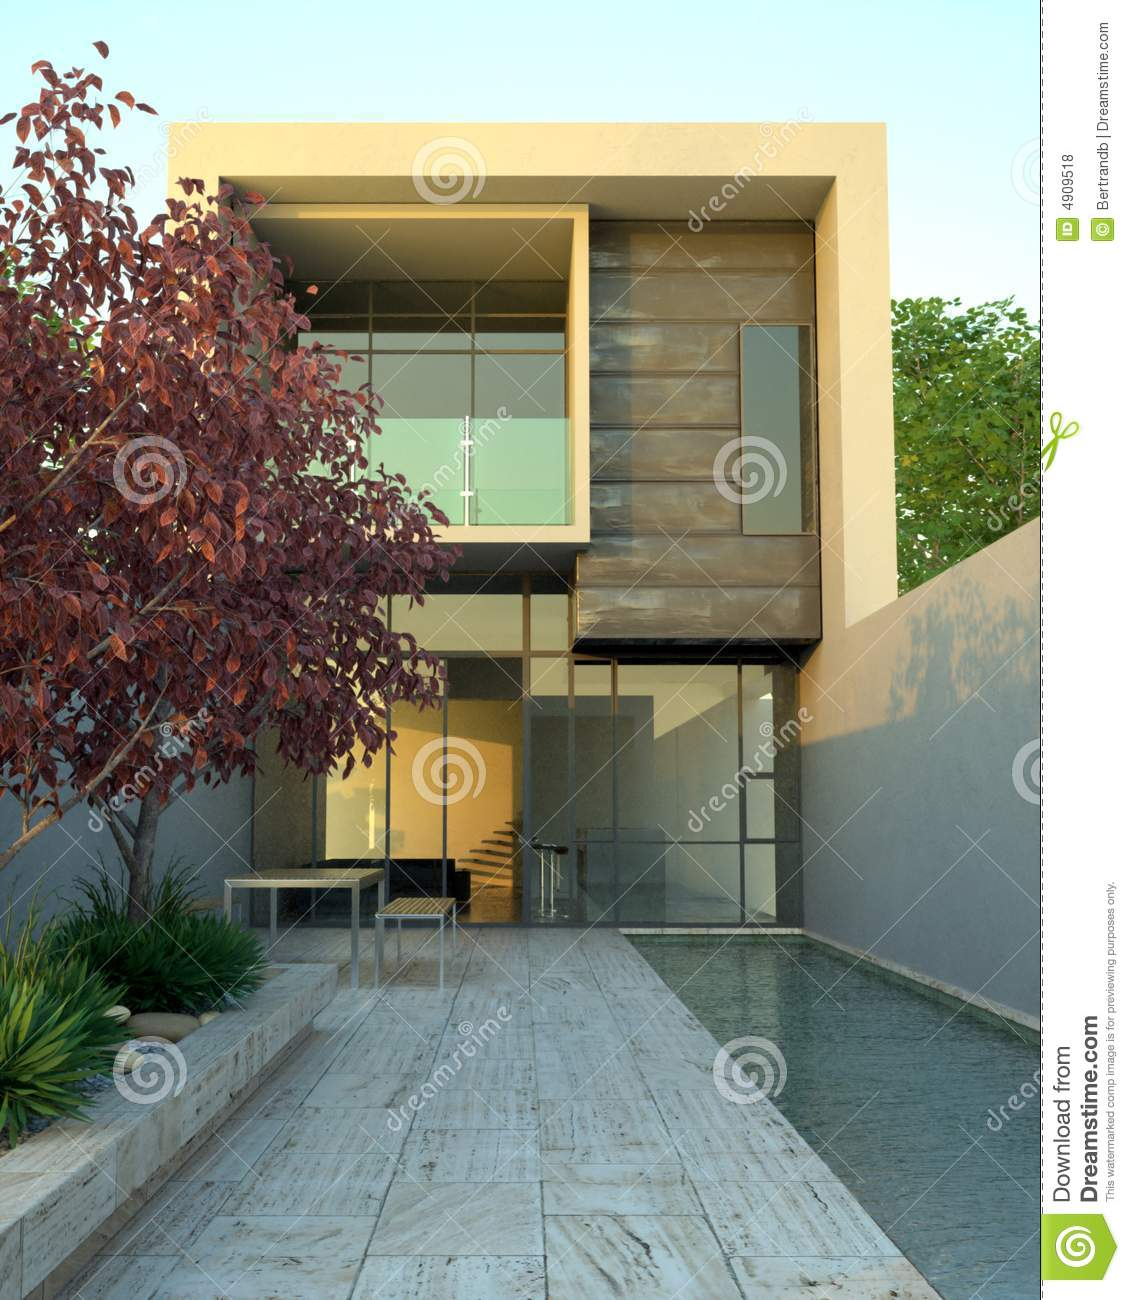 architecture. Luxury Modern Home With Pool Royalty Free Stock Photos   Image